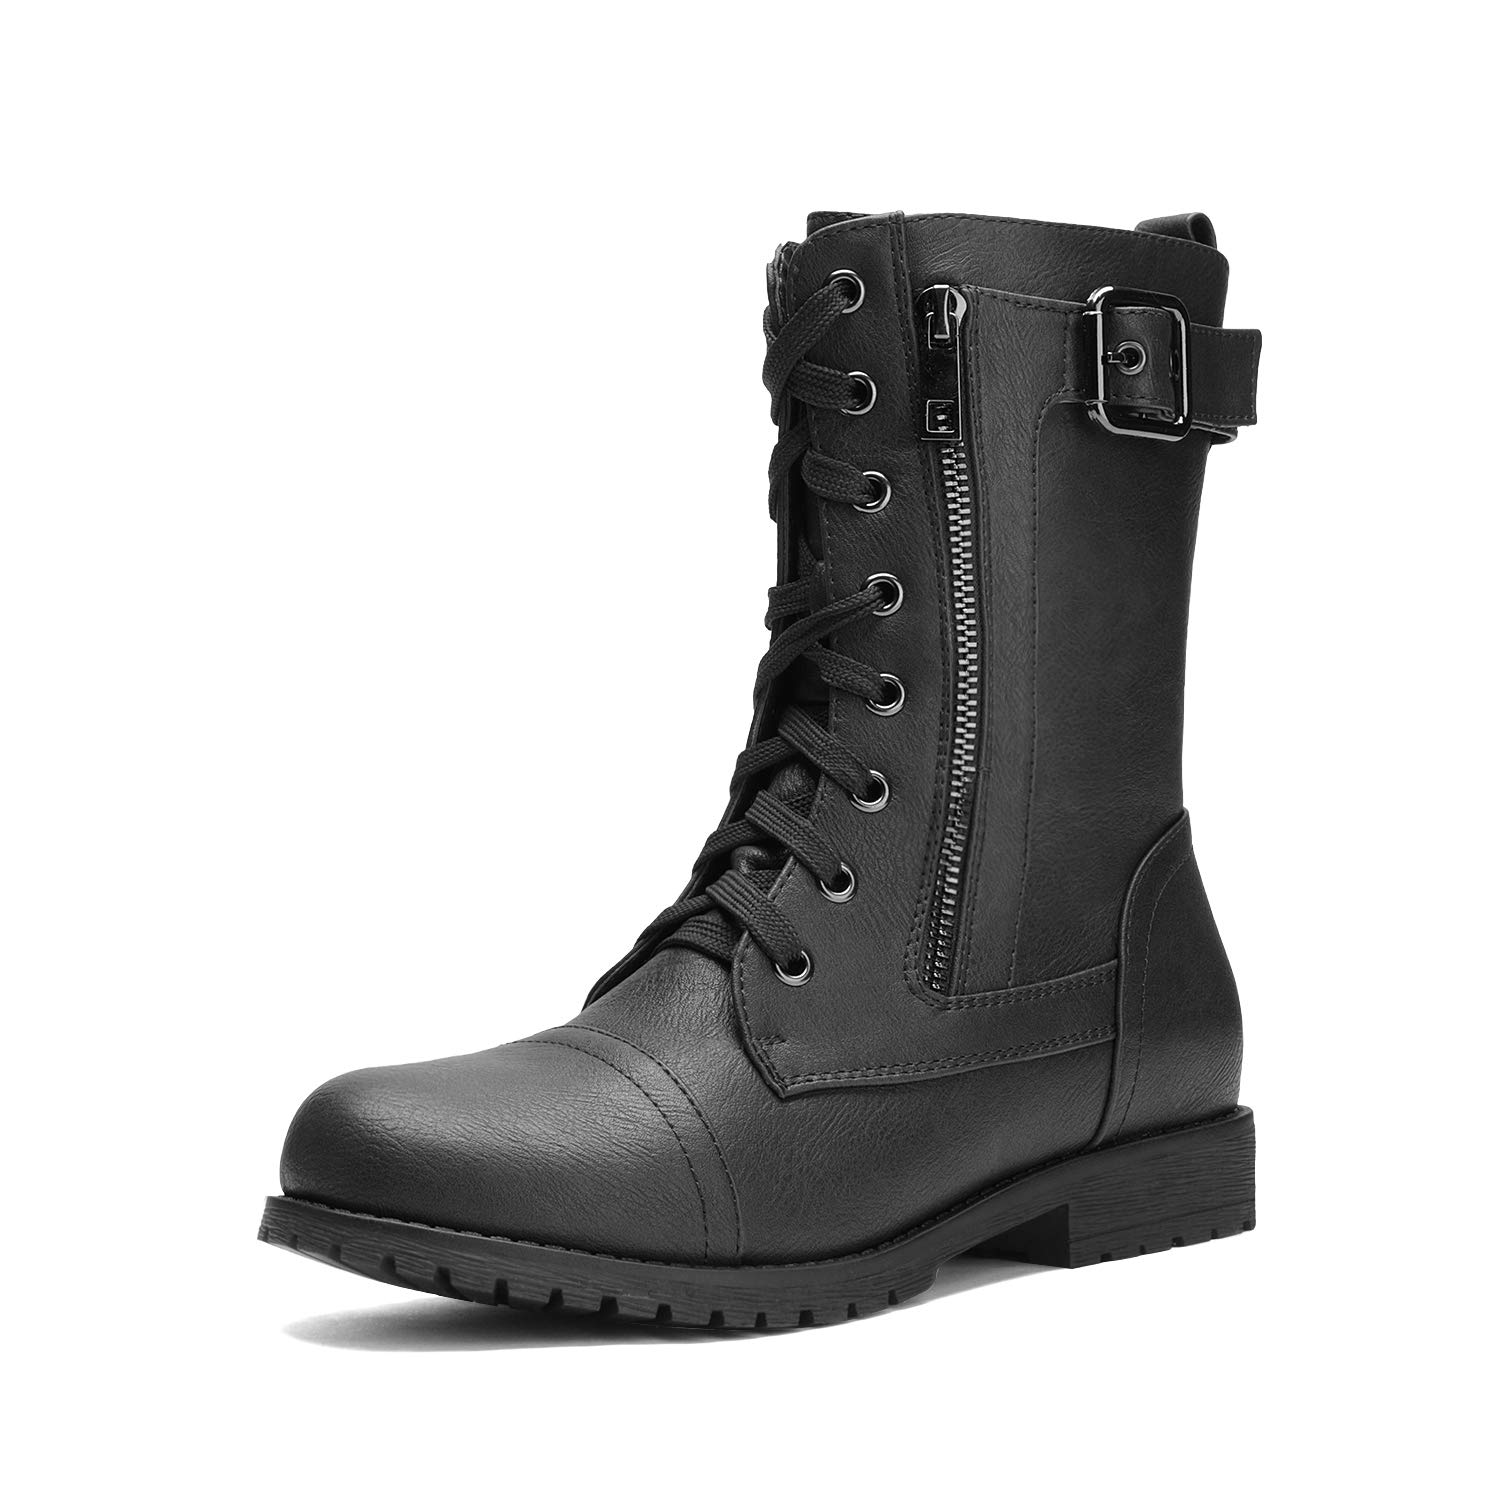 DREAM PAIRS Women's Ankle Bootie Winter Lace up Mid Calf Military Combat  Boots- Buy Online in India at desertcart.in. ProductId : 220669430.